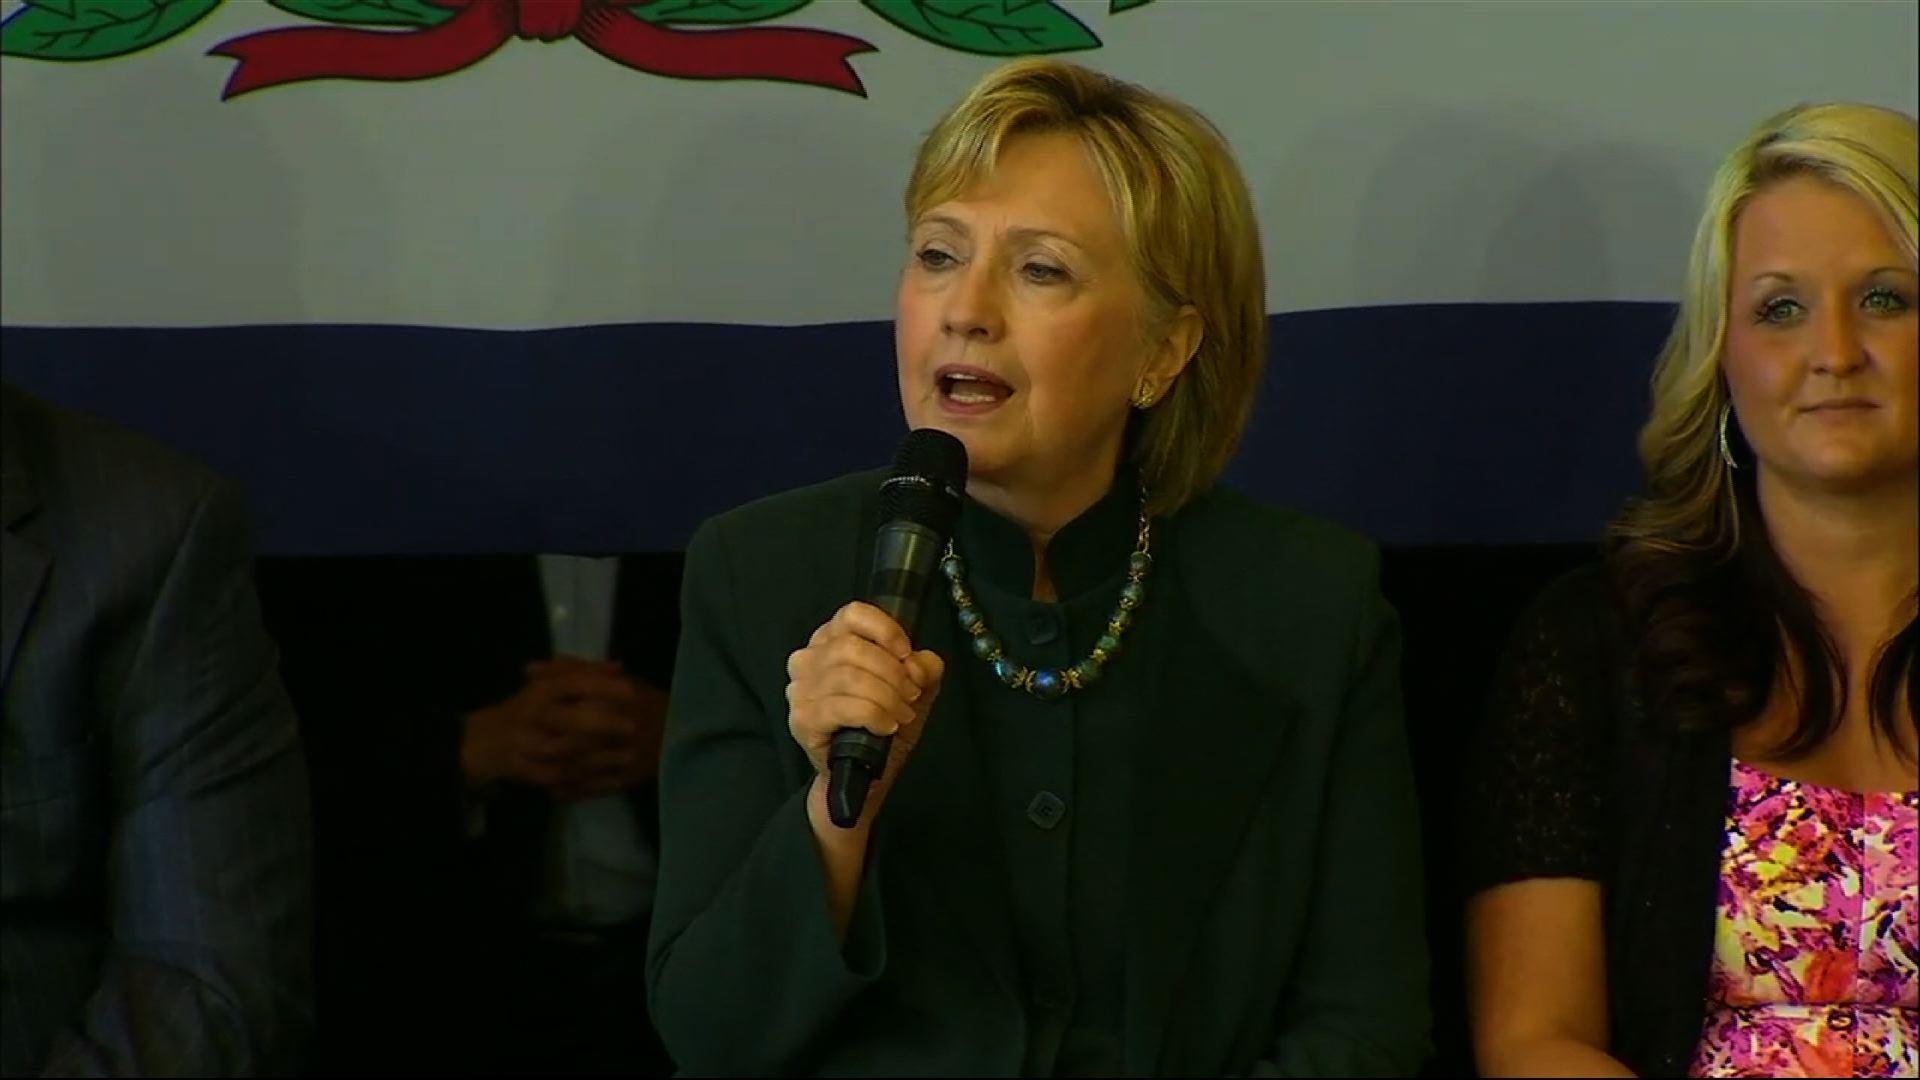 Clinton: On Opioid Epidemic,'This is Personal'